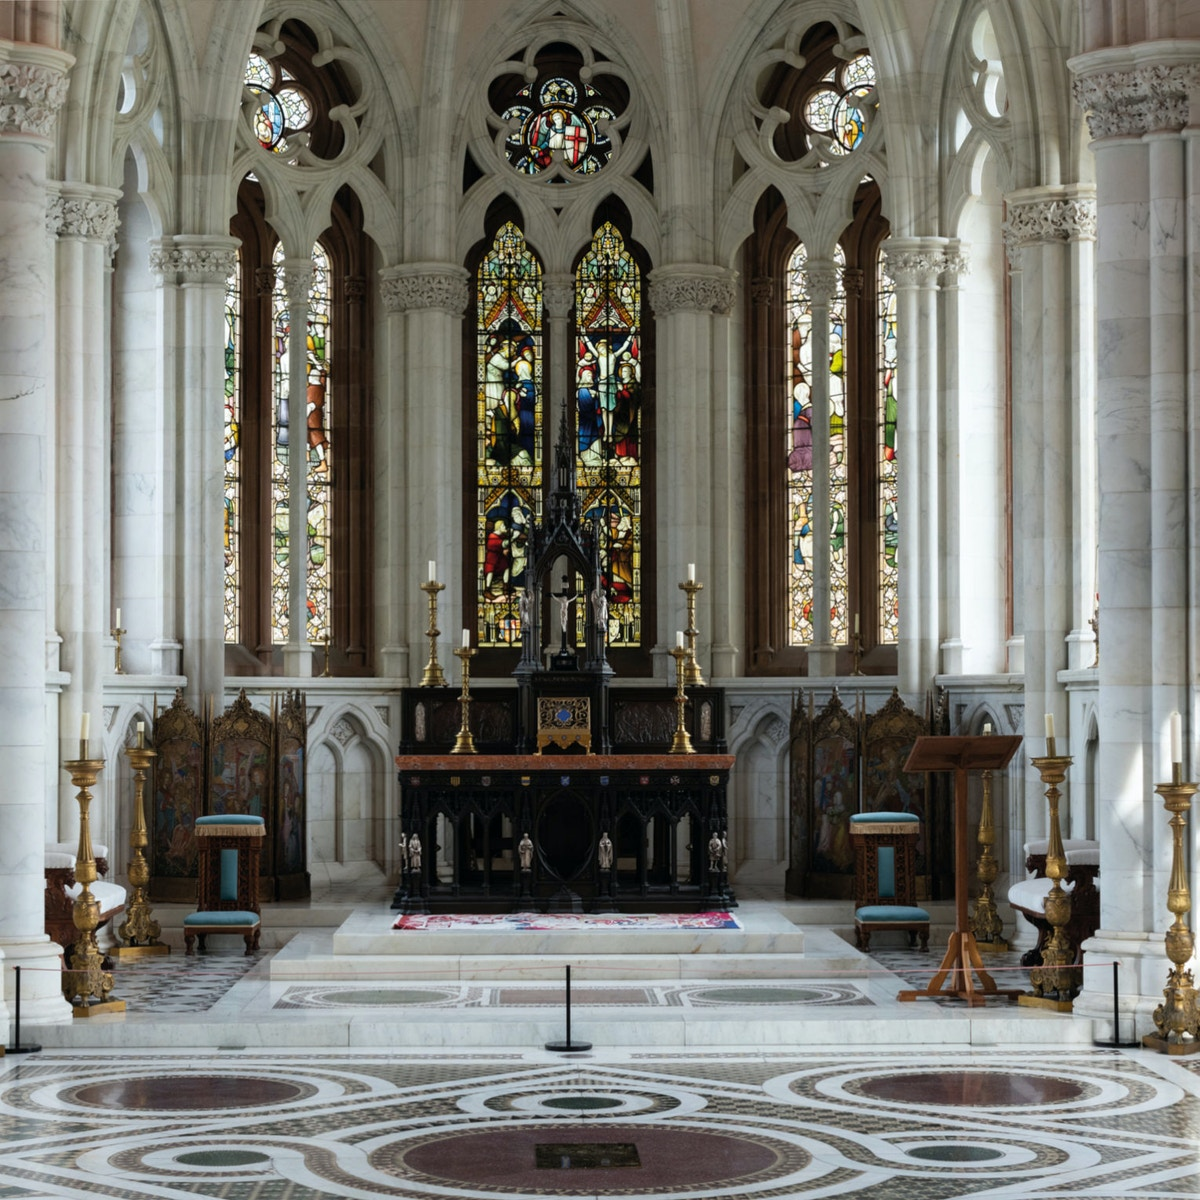 Interior shot of church with stained glass windows.